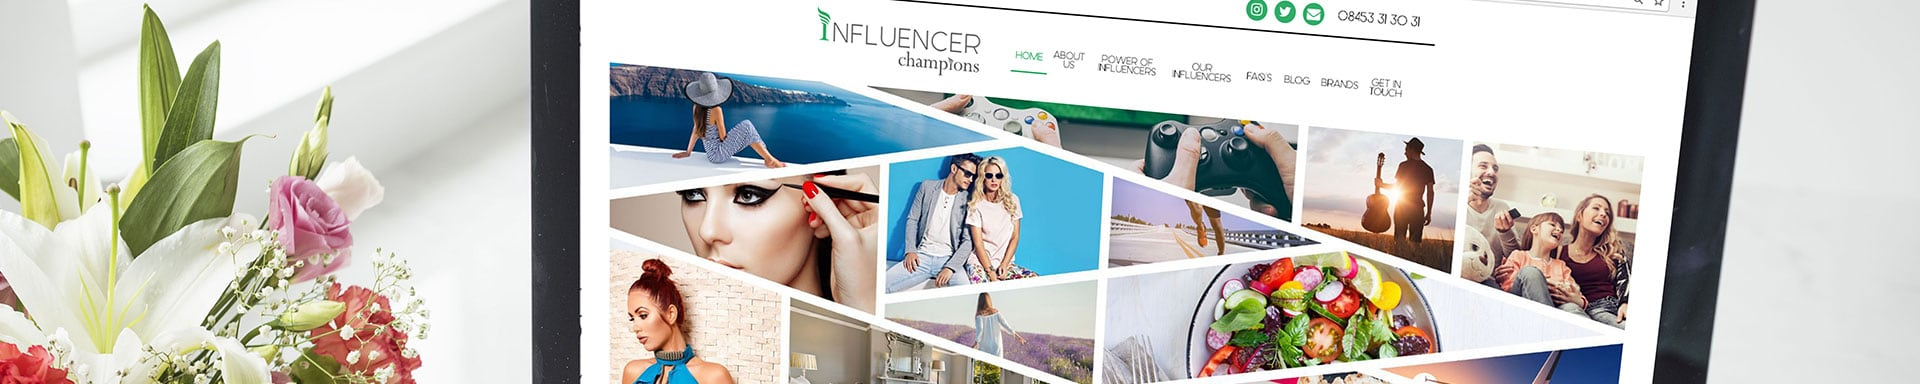 Influencer champions